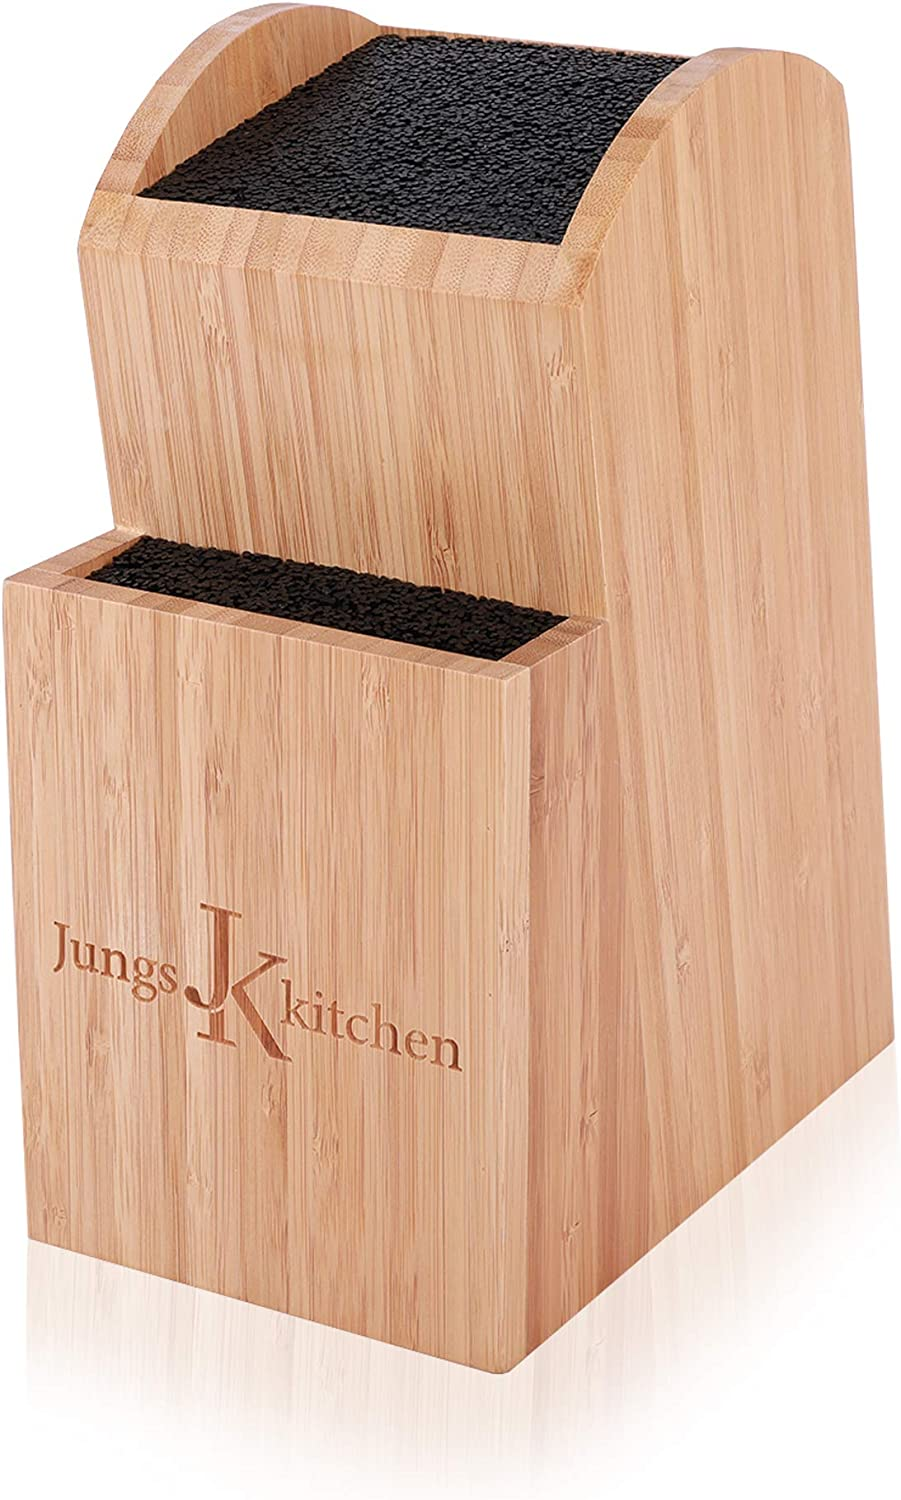 JUNGS KITCHEN Premium Universal Knife Block Without Knives - 2 Tier Bamboo Kitchen Knife Holder Up to 16 Small and Large Knives Storage, Easy to Clean The Flexible Rods.